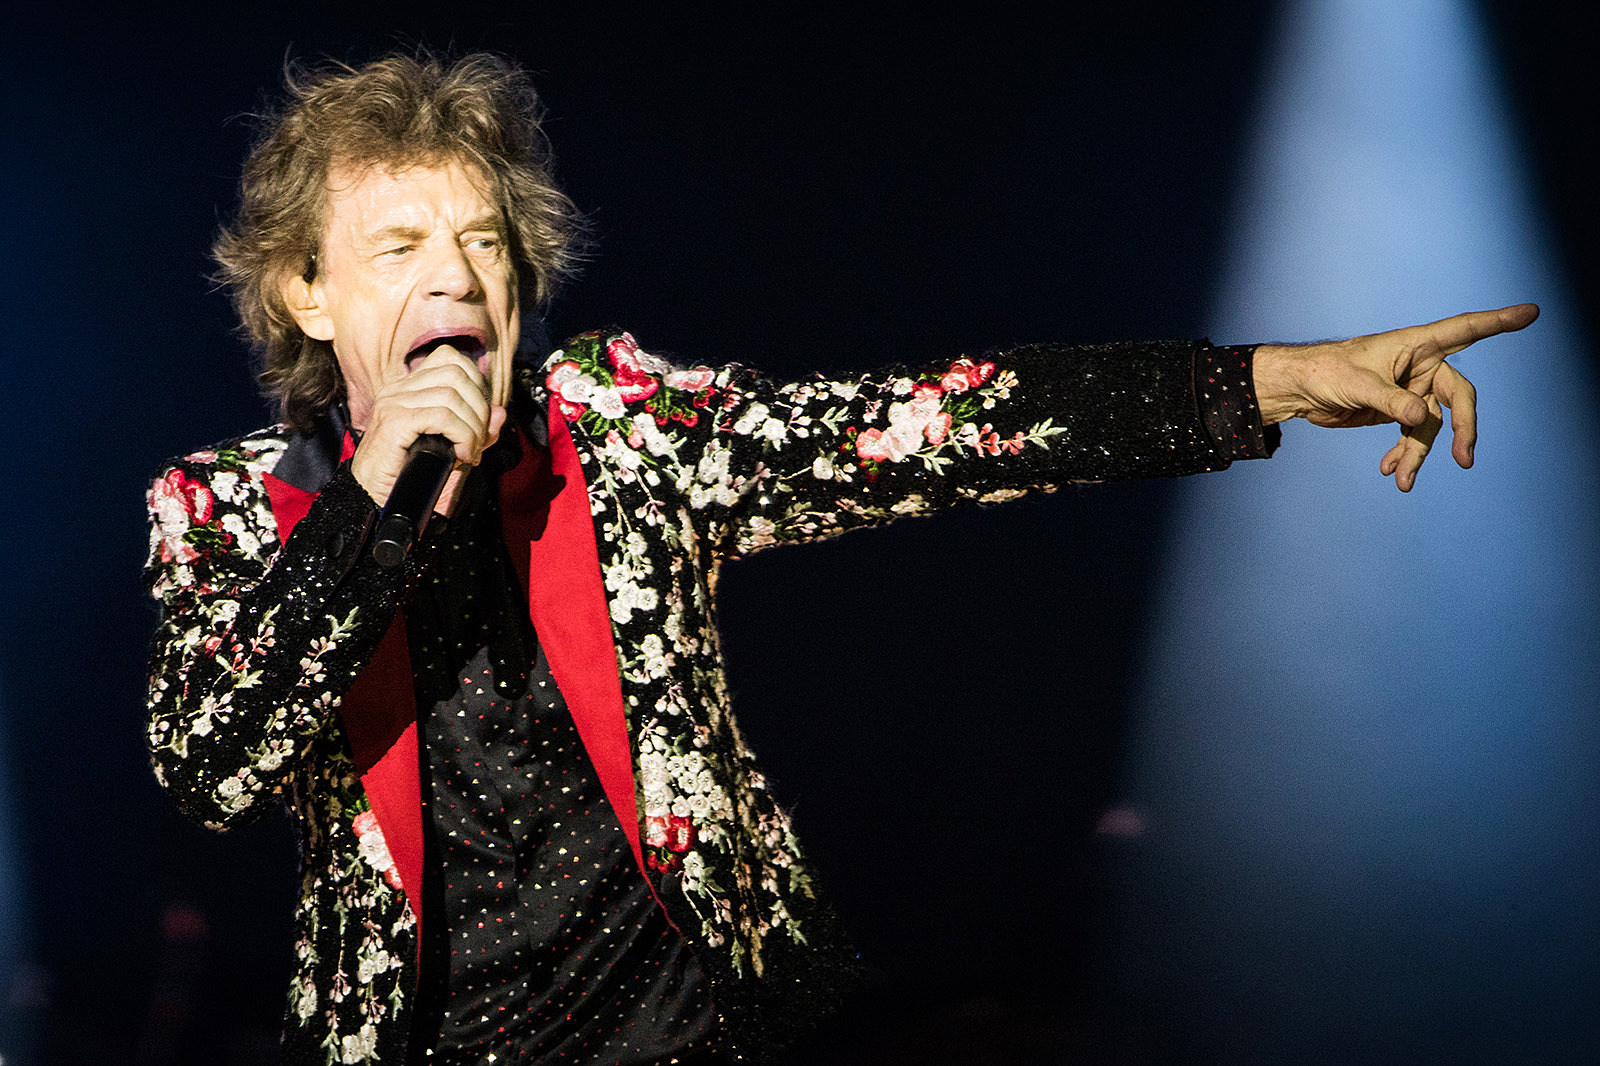 Mick Jagger Takes Aim at Anti-Vaxxers and Conspiracy Theorists